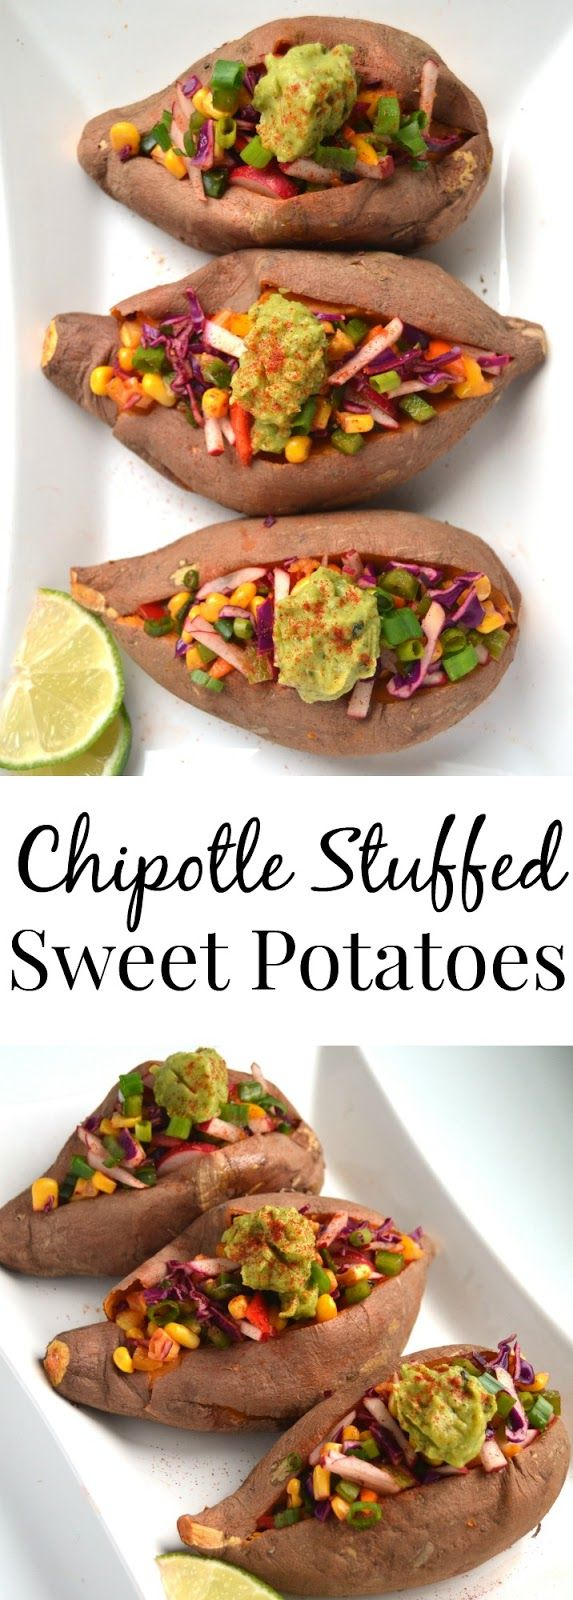 Make these for Cinco De Mayo! These chipotle stuffed sweet potatoes are fresh and full of flavor! They are packed full of vegetables for a delicious and nutritious side dish. www.nutritionistreviews.com